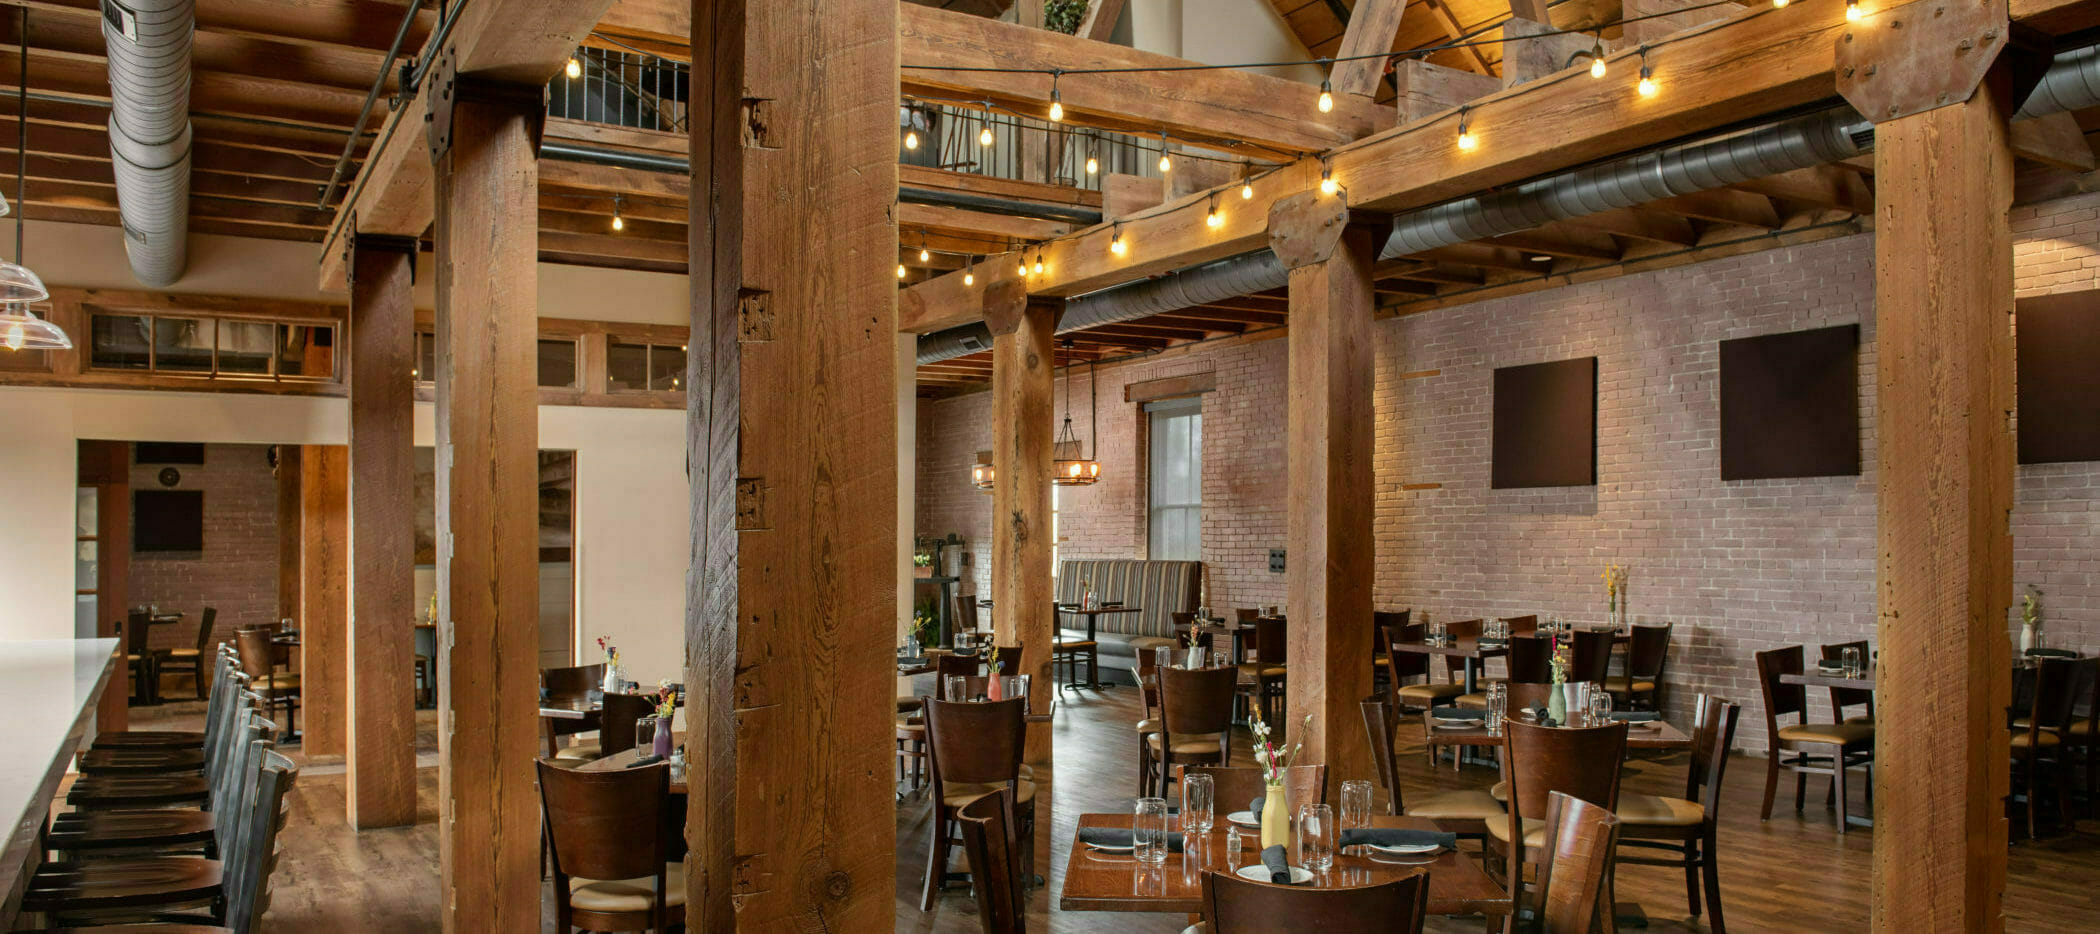 Third Floor Dining Space at The Mill in Hershey